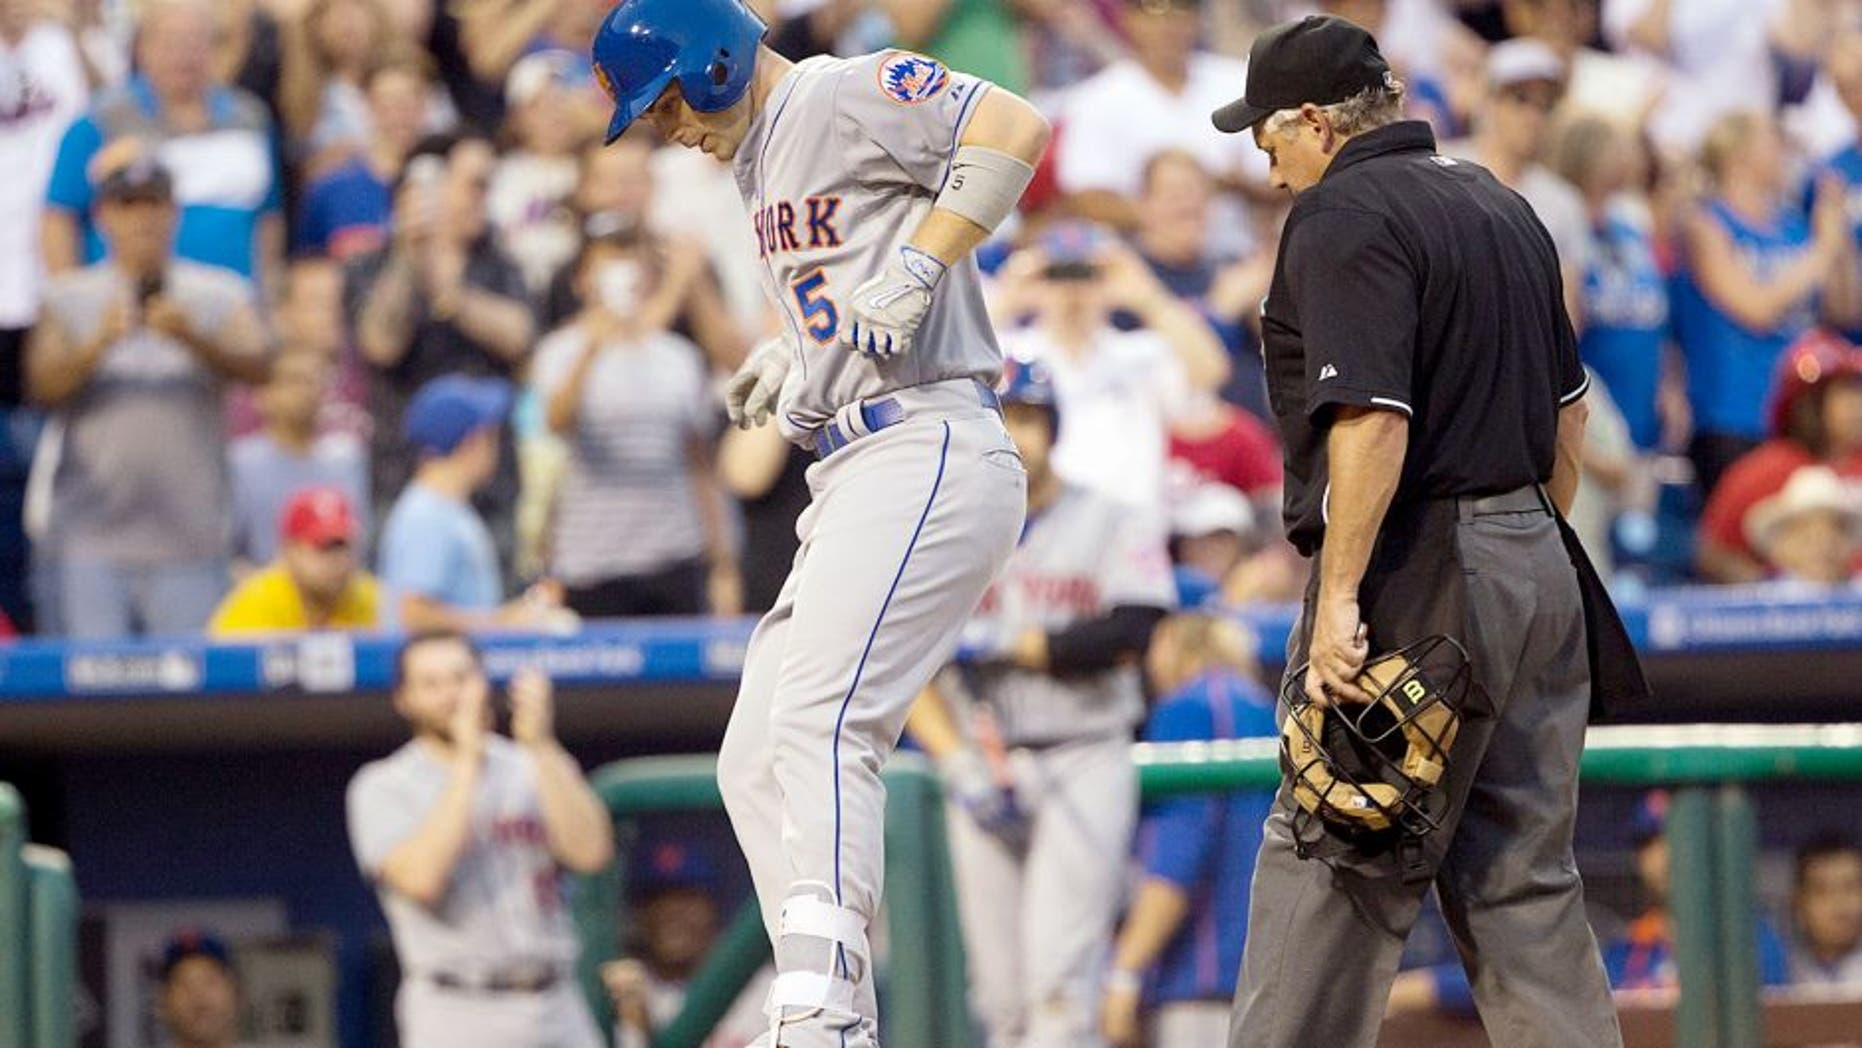 Aug 24, 2015; Philadelphia, PA, USA; New York Mets third baseman David Wright (5) jumps on home plate after hitting a solo home run during the second inning against the Philadelphia Phillies at Citizens Bank Park. Mandatory Credit: Bill Streicher-USA TODAY Sports